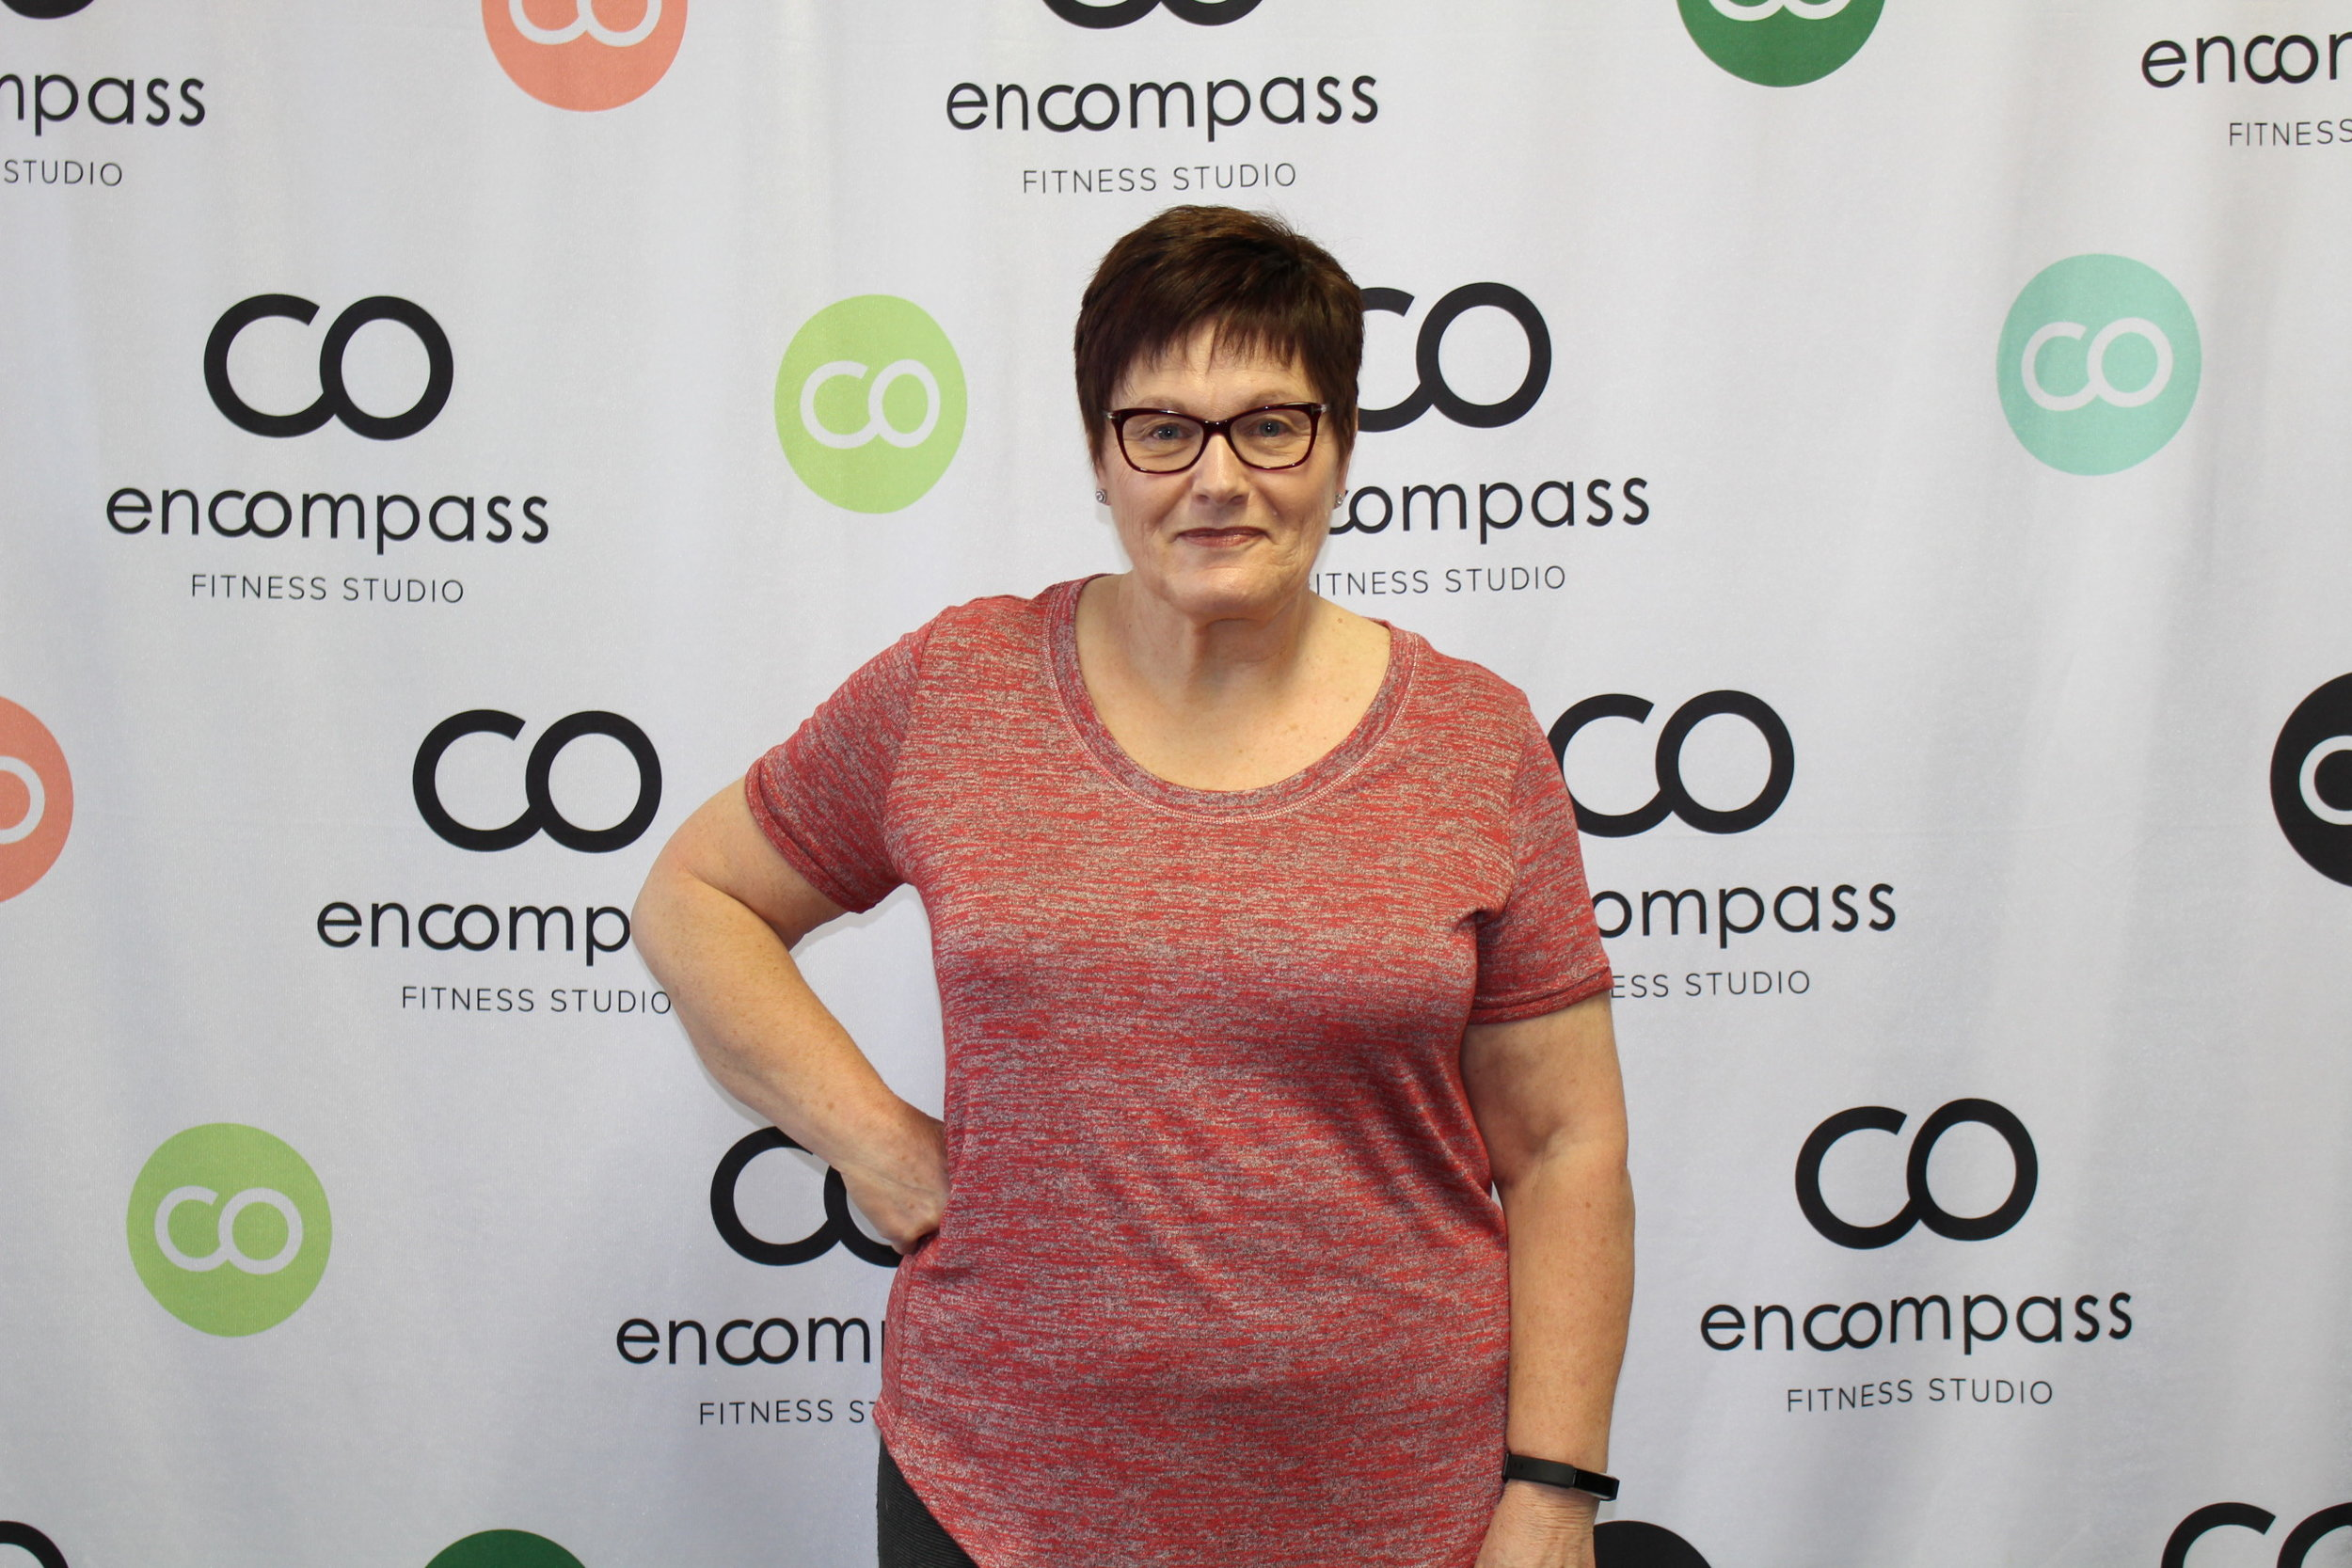 Linda shares her thoughts on changing your life at any age, and her tricks for losing 32 pounds, and over 7% body fat over the past 6 months. She's right - if she can do it, you can too!